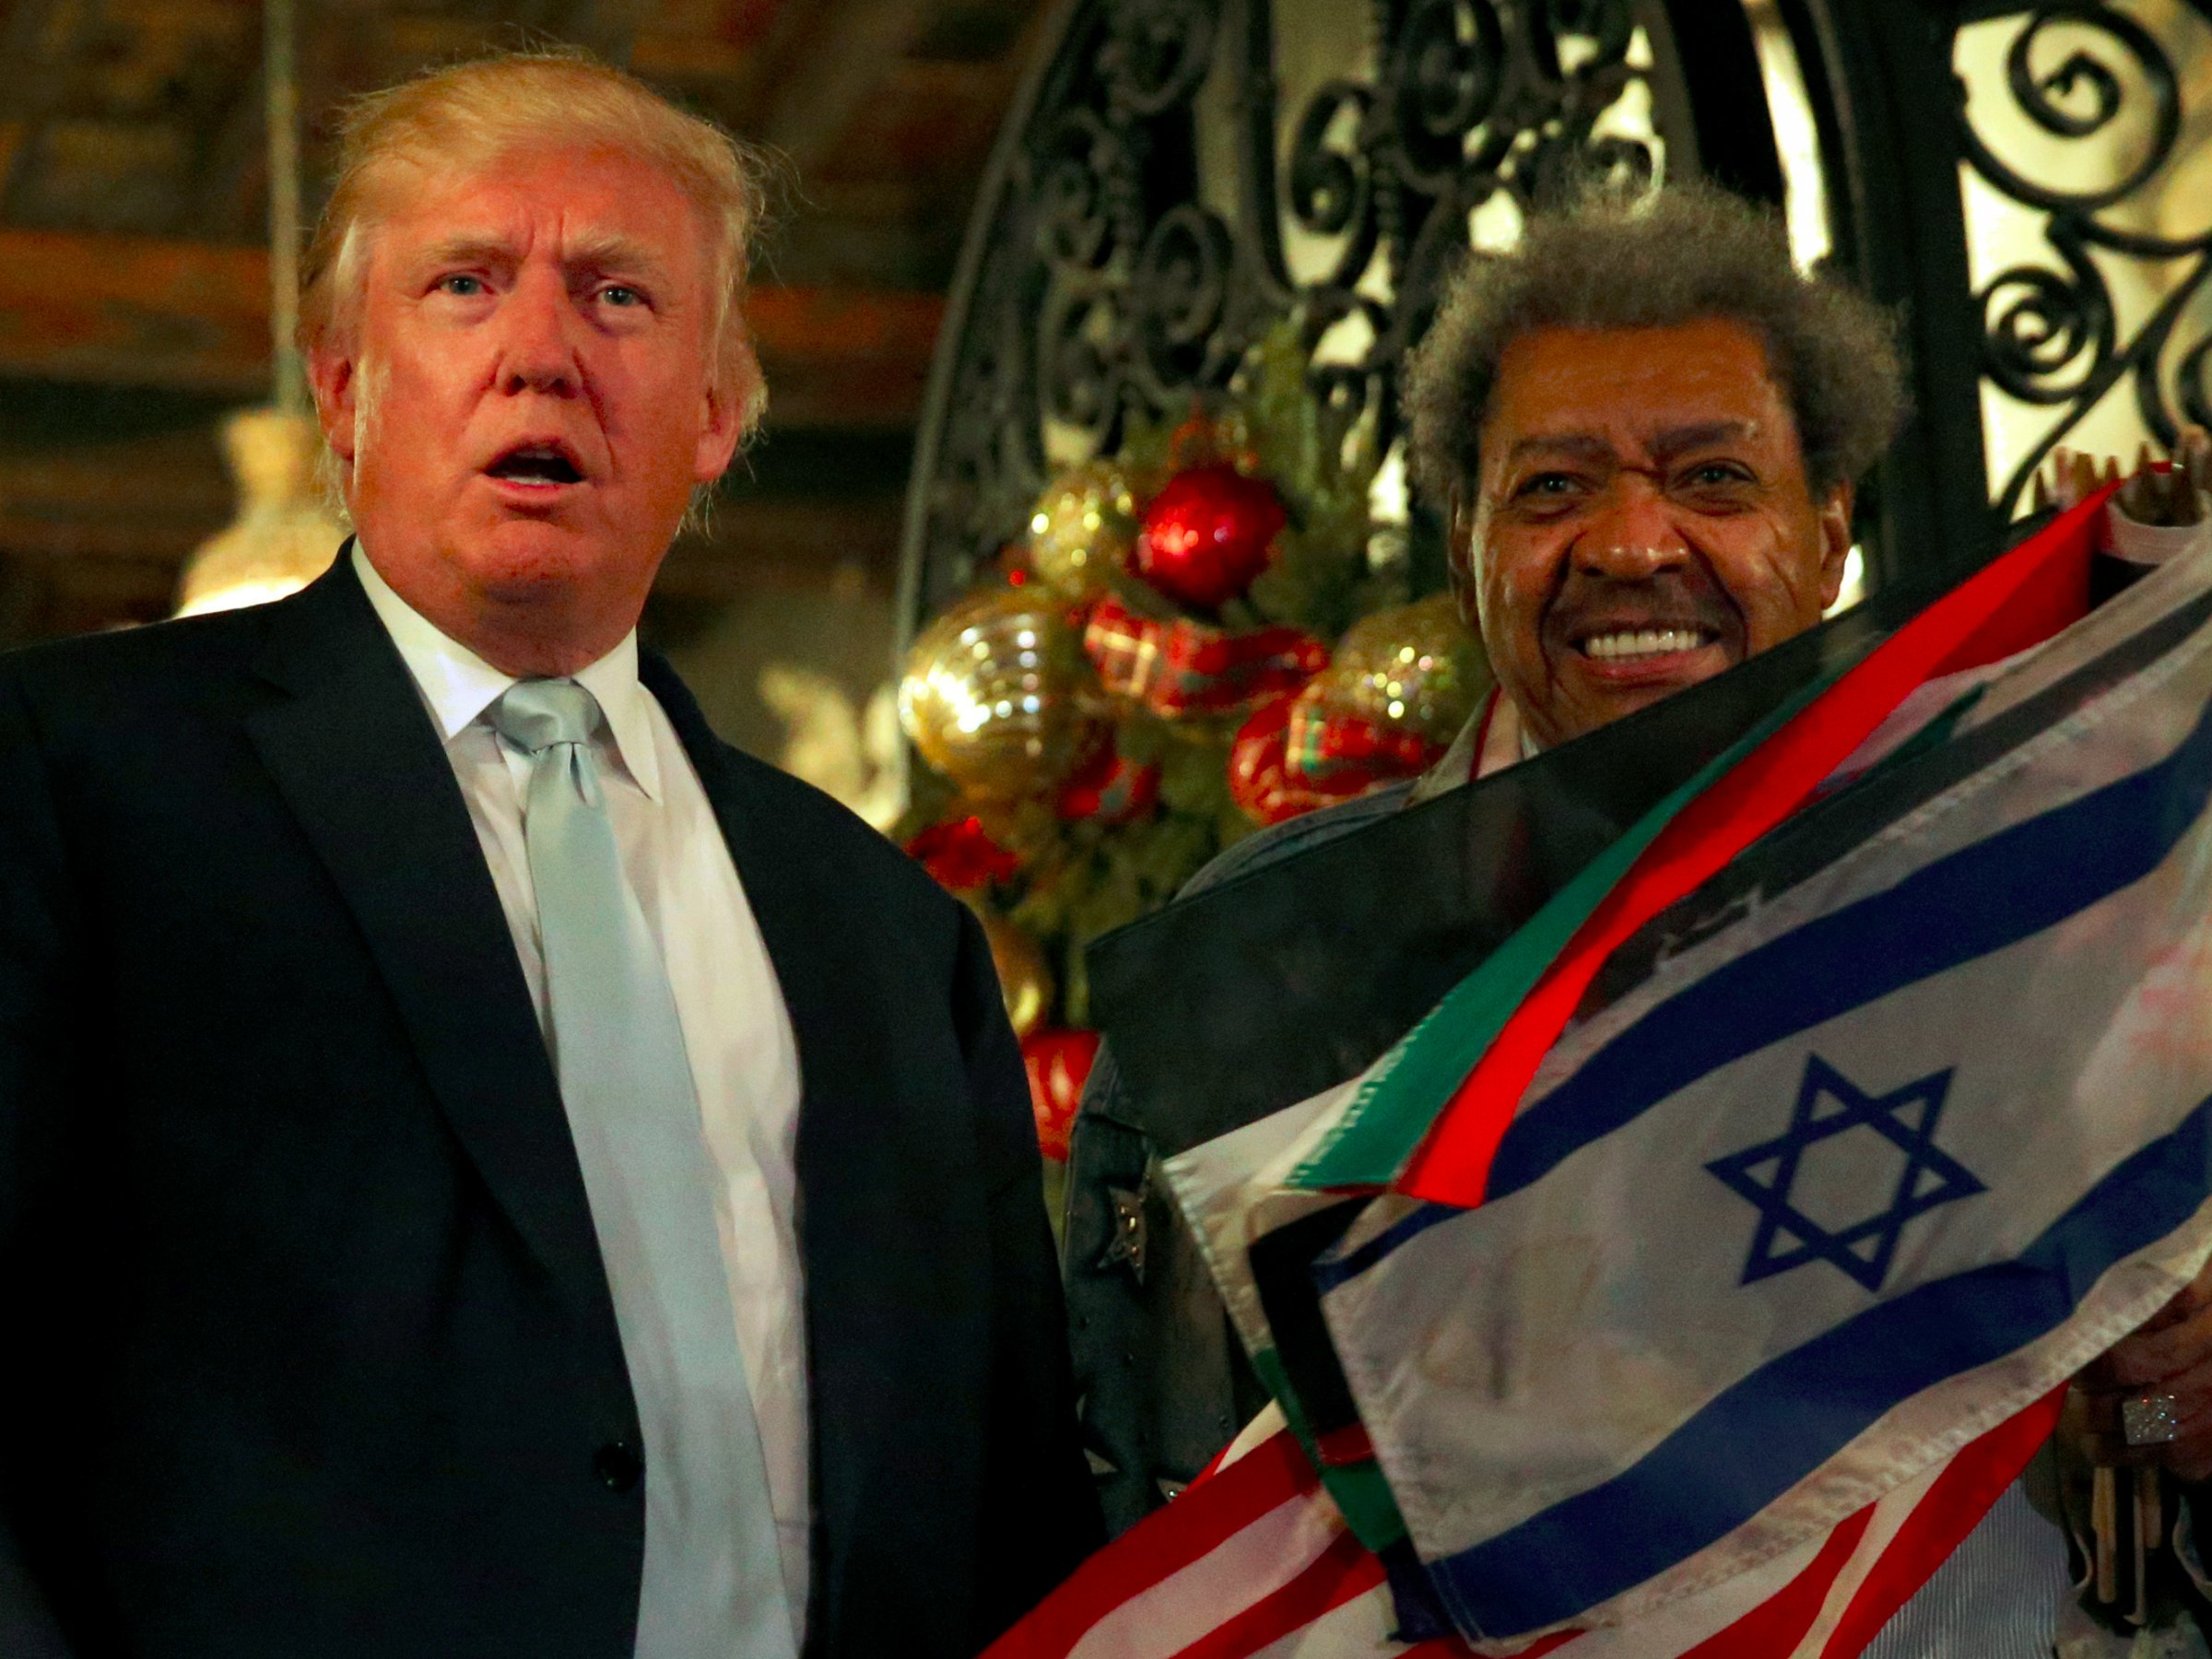 Donald Trump takes credit for jobs, gives press conference with Don King 2016 images